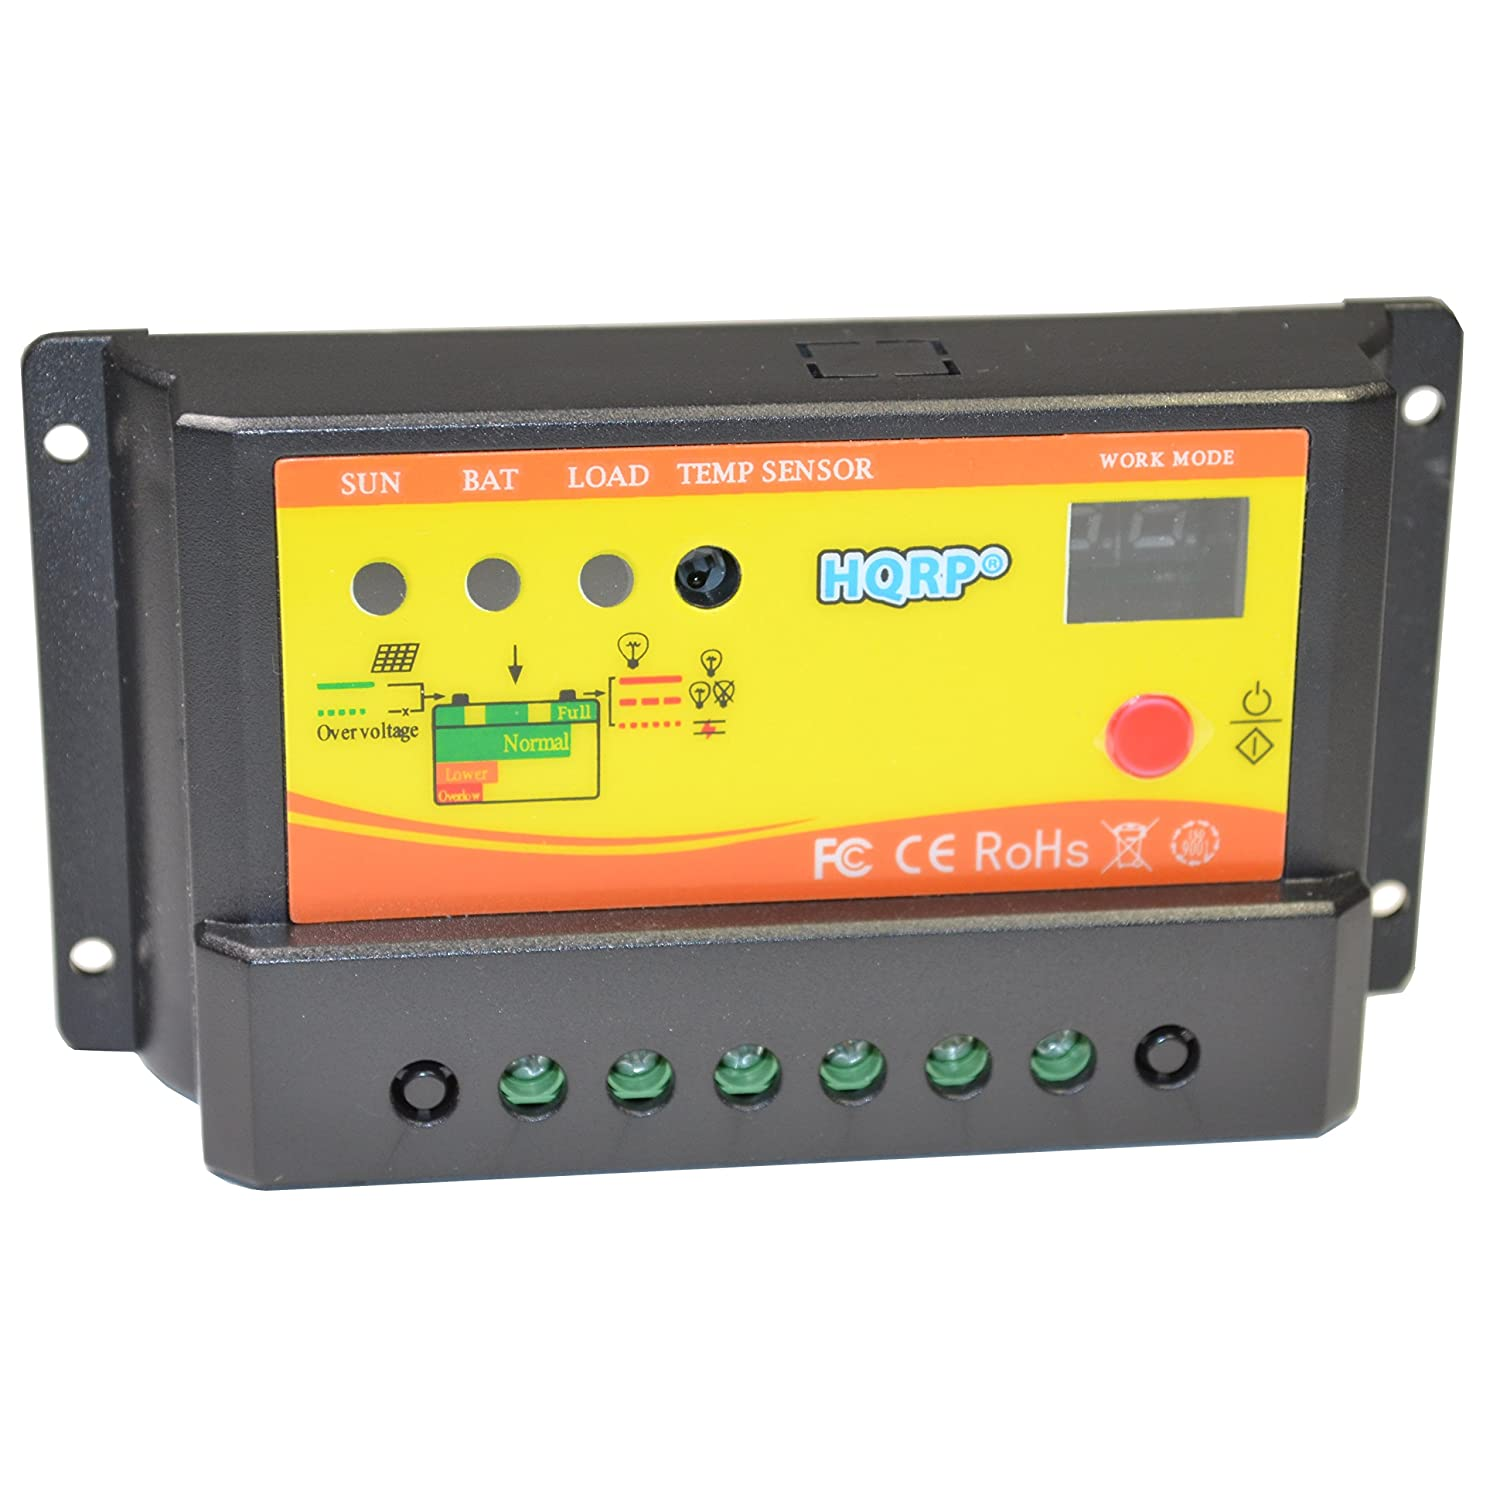 Hqrp Solar 10a Charge Power Controller Regulator 12v Voltage The Supply Is Essentially Same 24v 10 Amp With Led Indicator Plus Uv Meter Renewable Energy Controllers